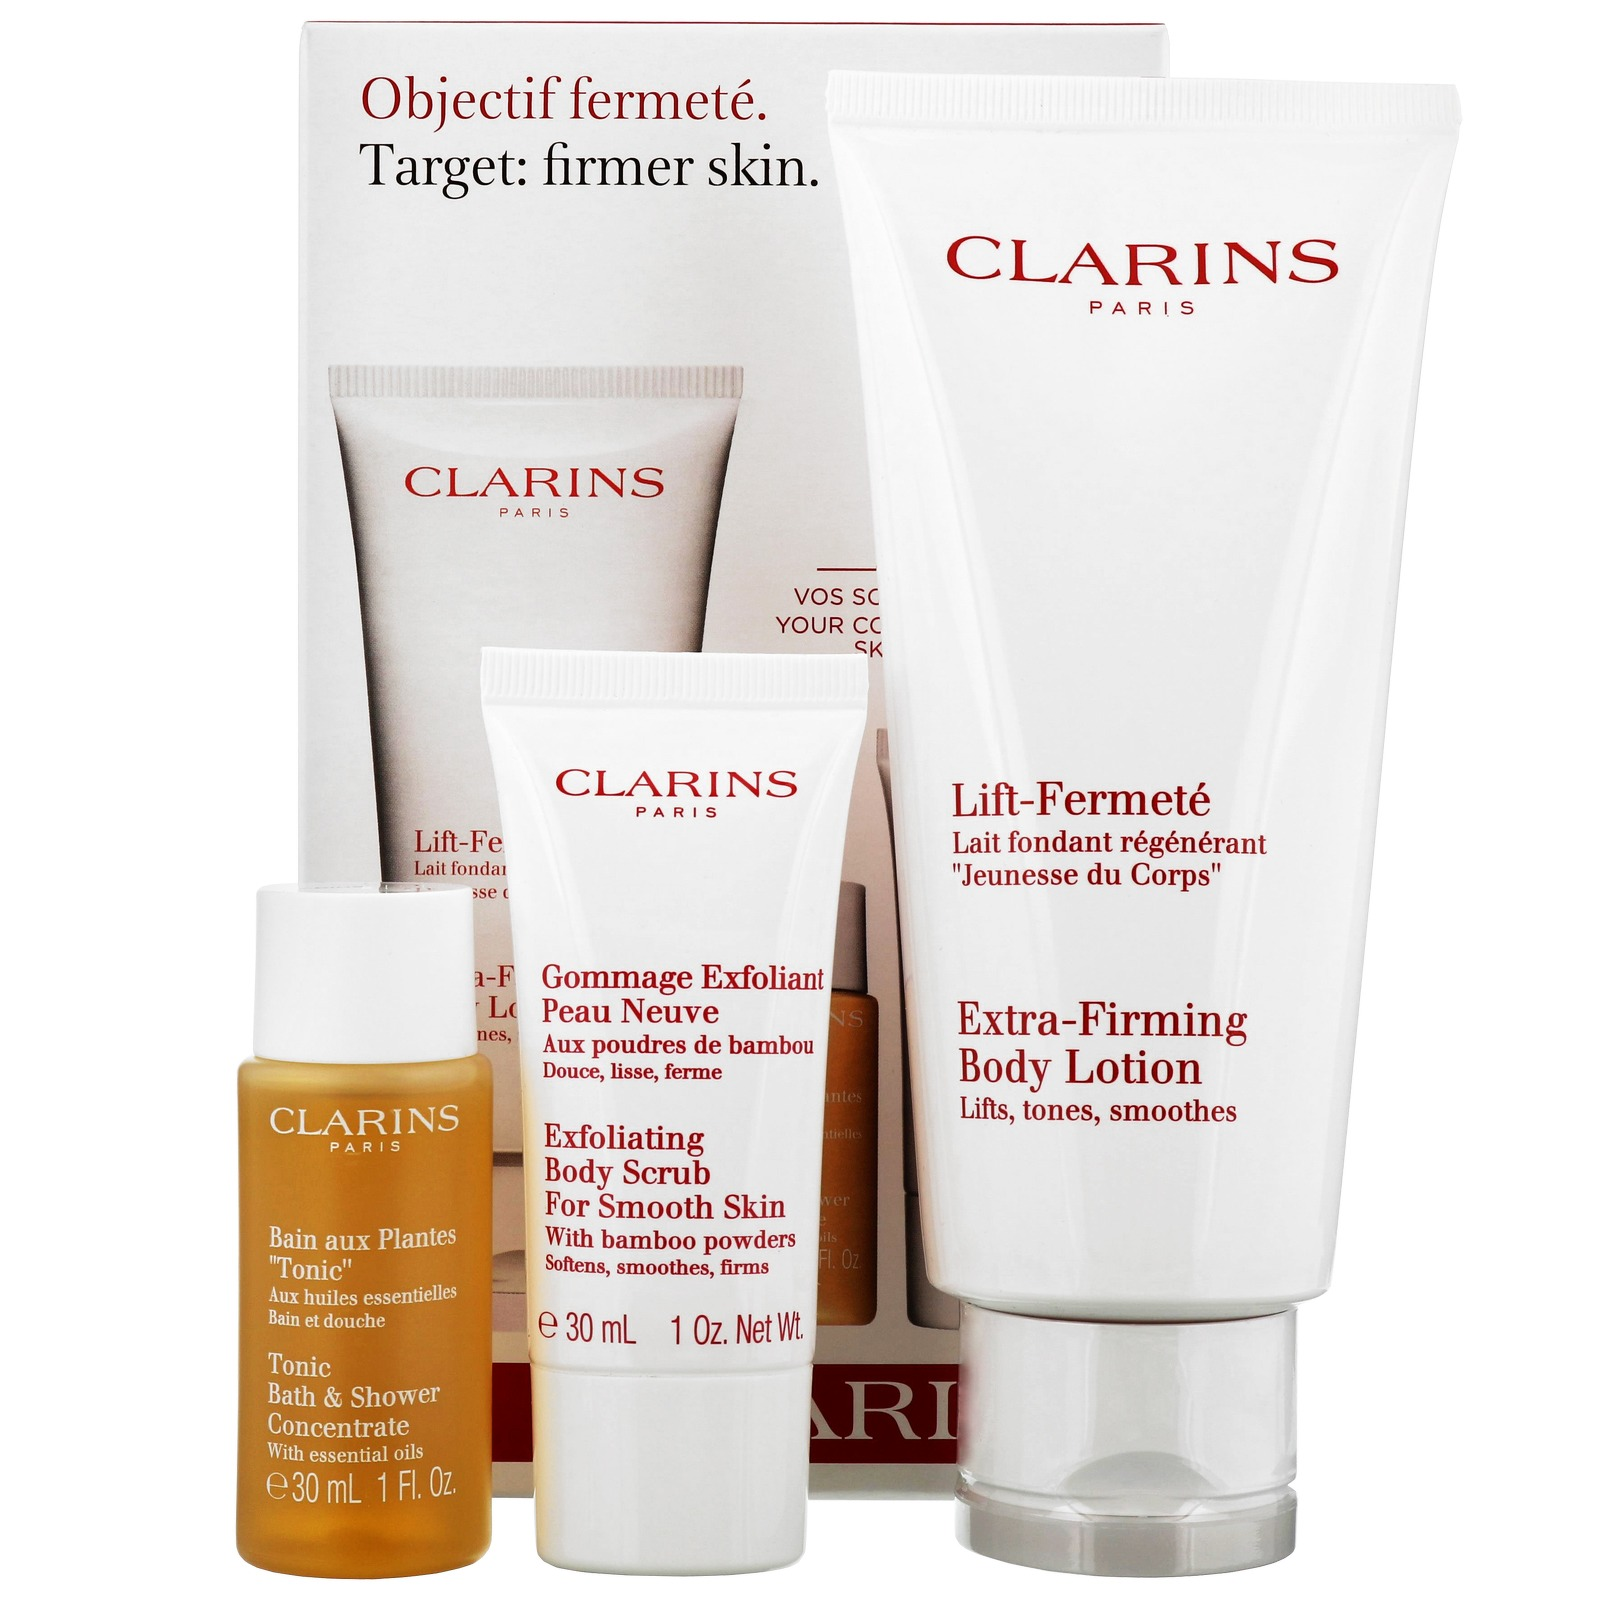 Nye Clarins Gifts & Sets Extra-Firming Body Lotion 200ml Set - Gifts LV-13